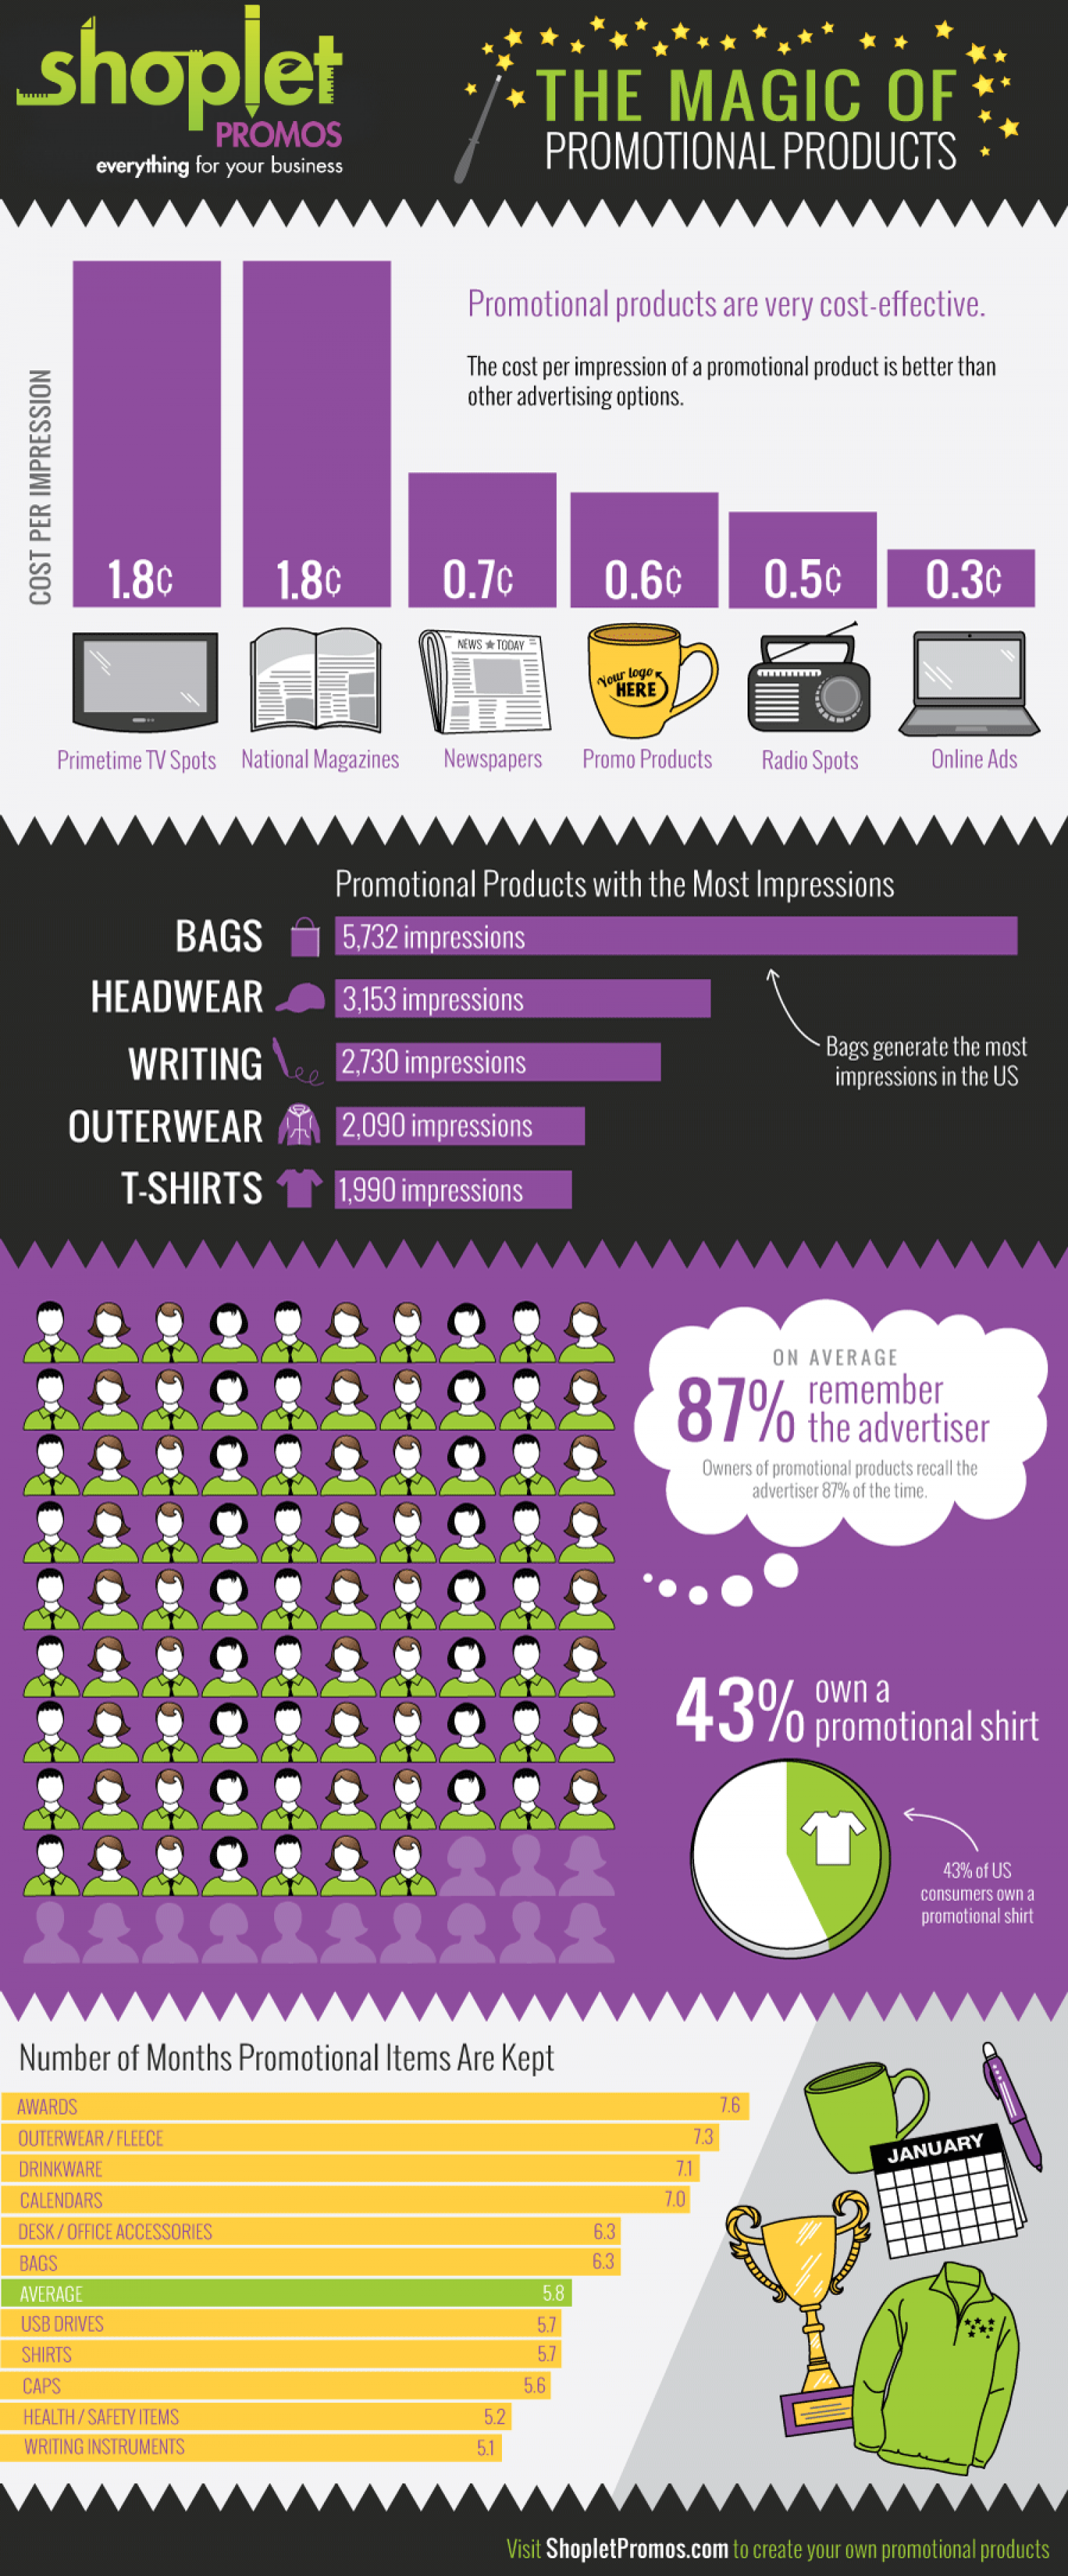 The Magic of Promotional Products Infographic